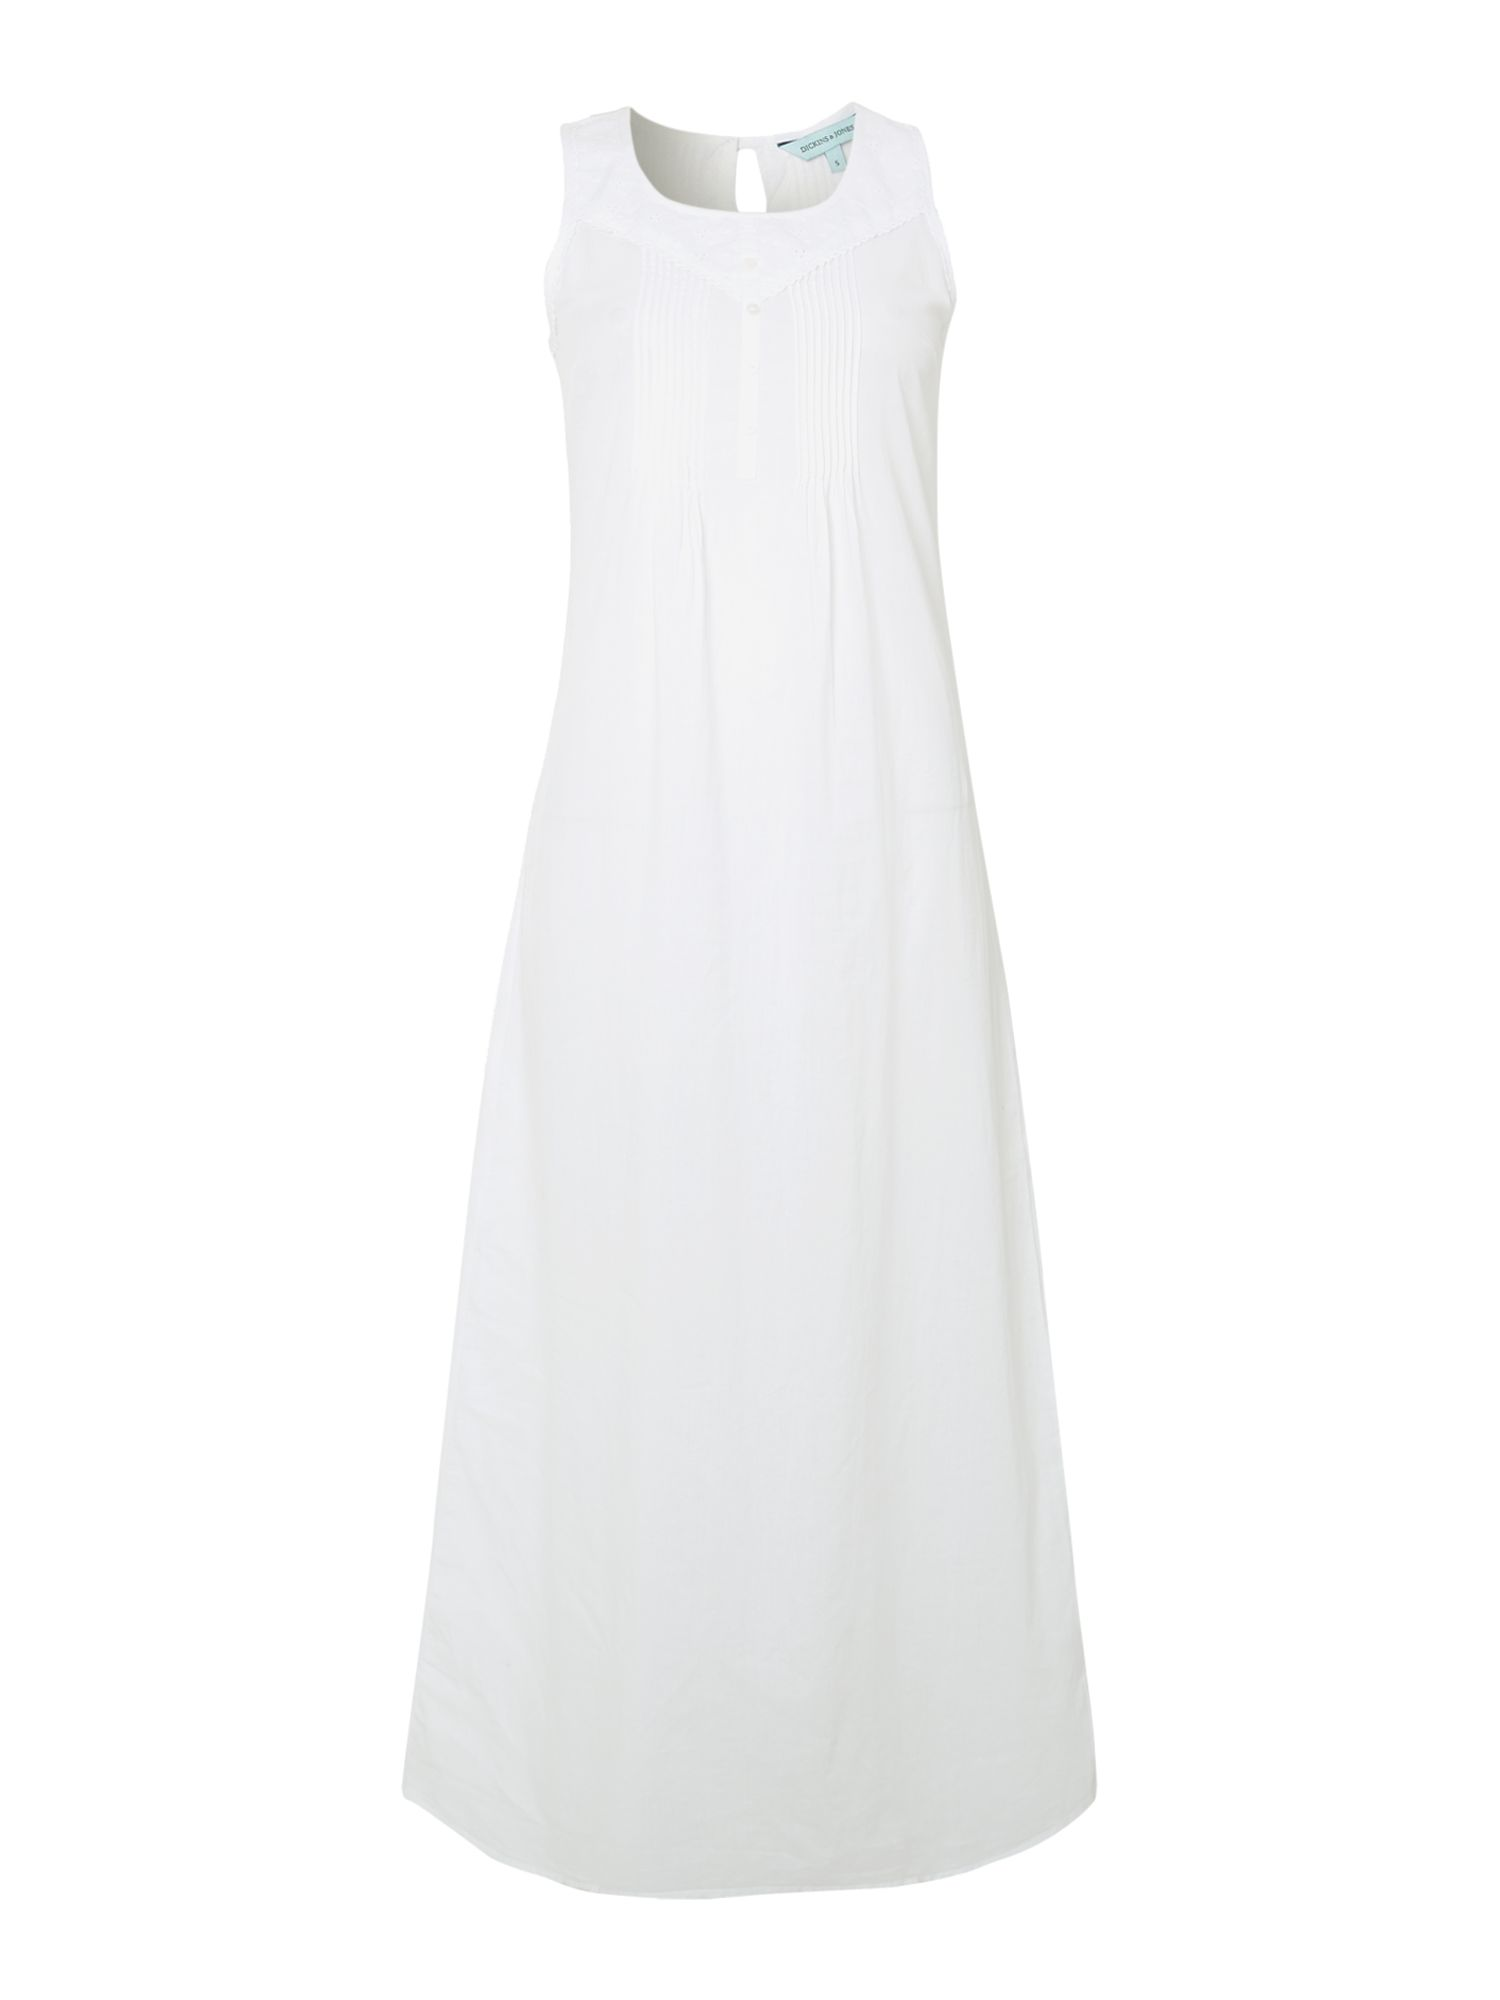 Susan broderie anglaise long nightdress